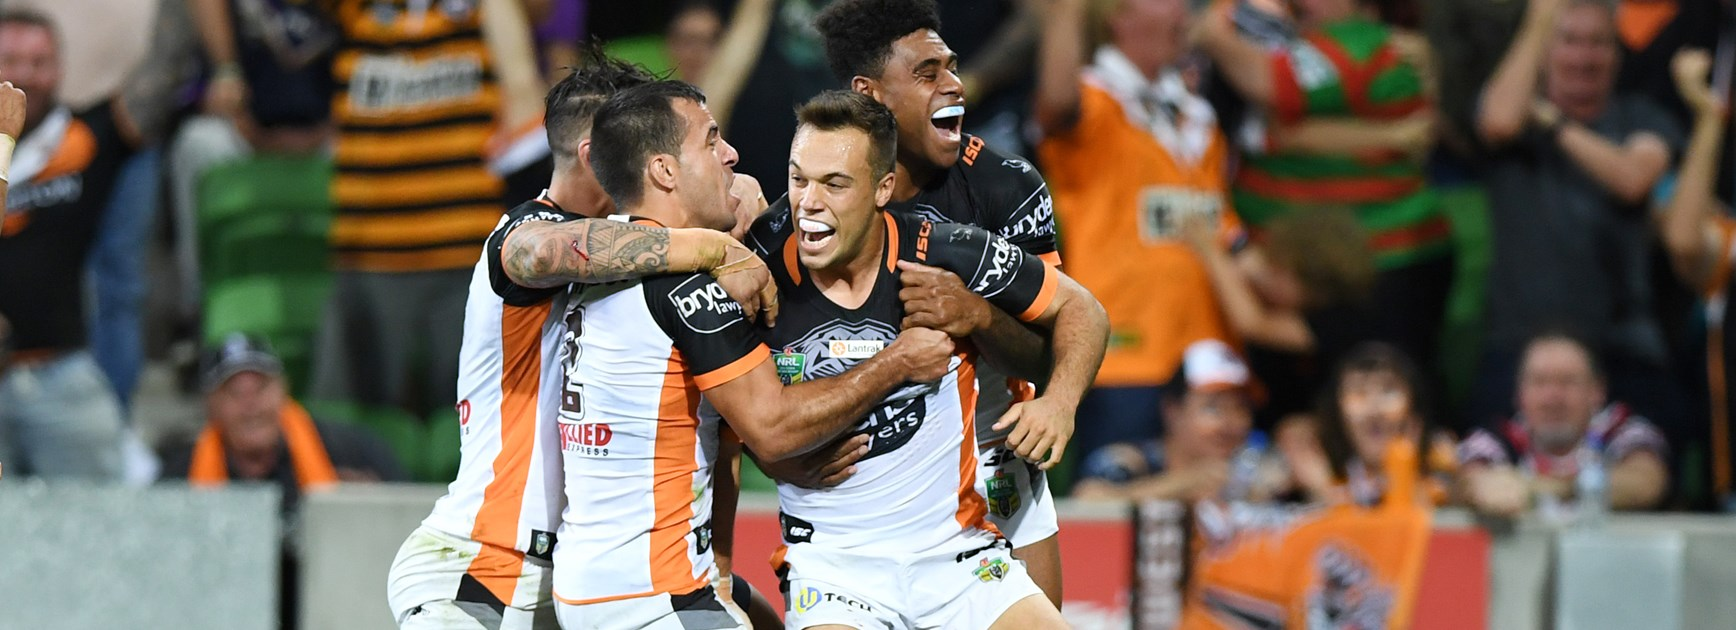 Tigers halfback Luke Brooks celebrates his try against the Storm.